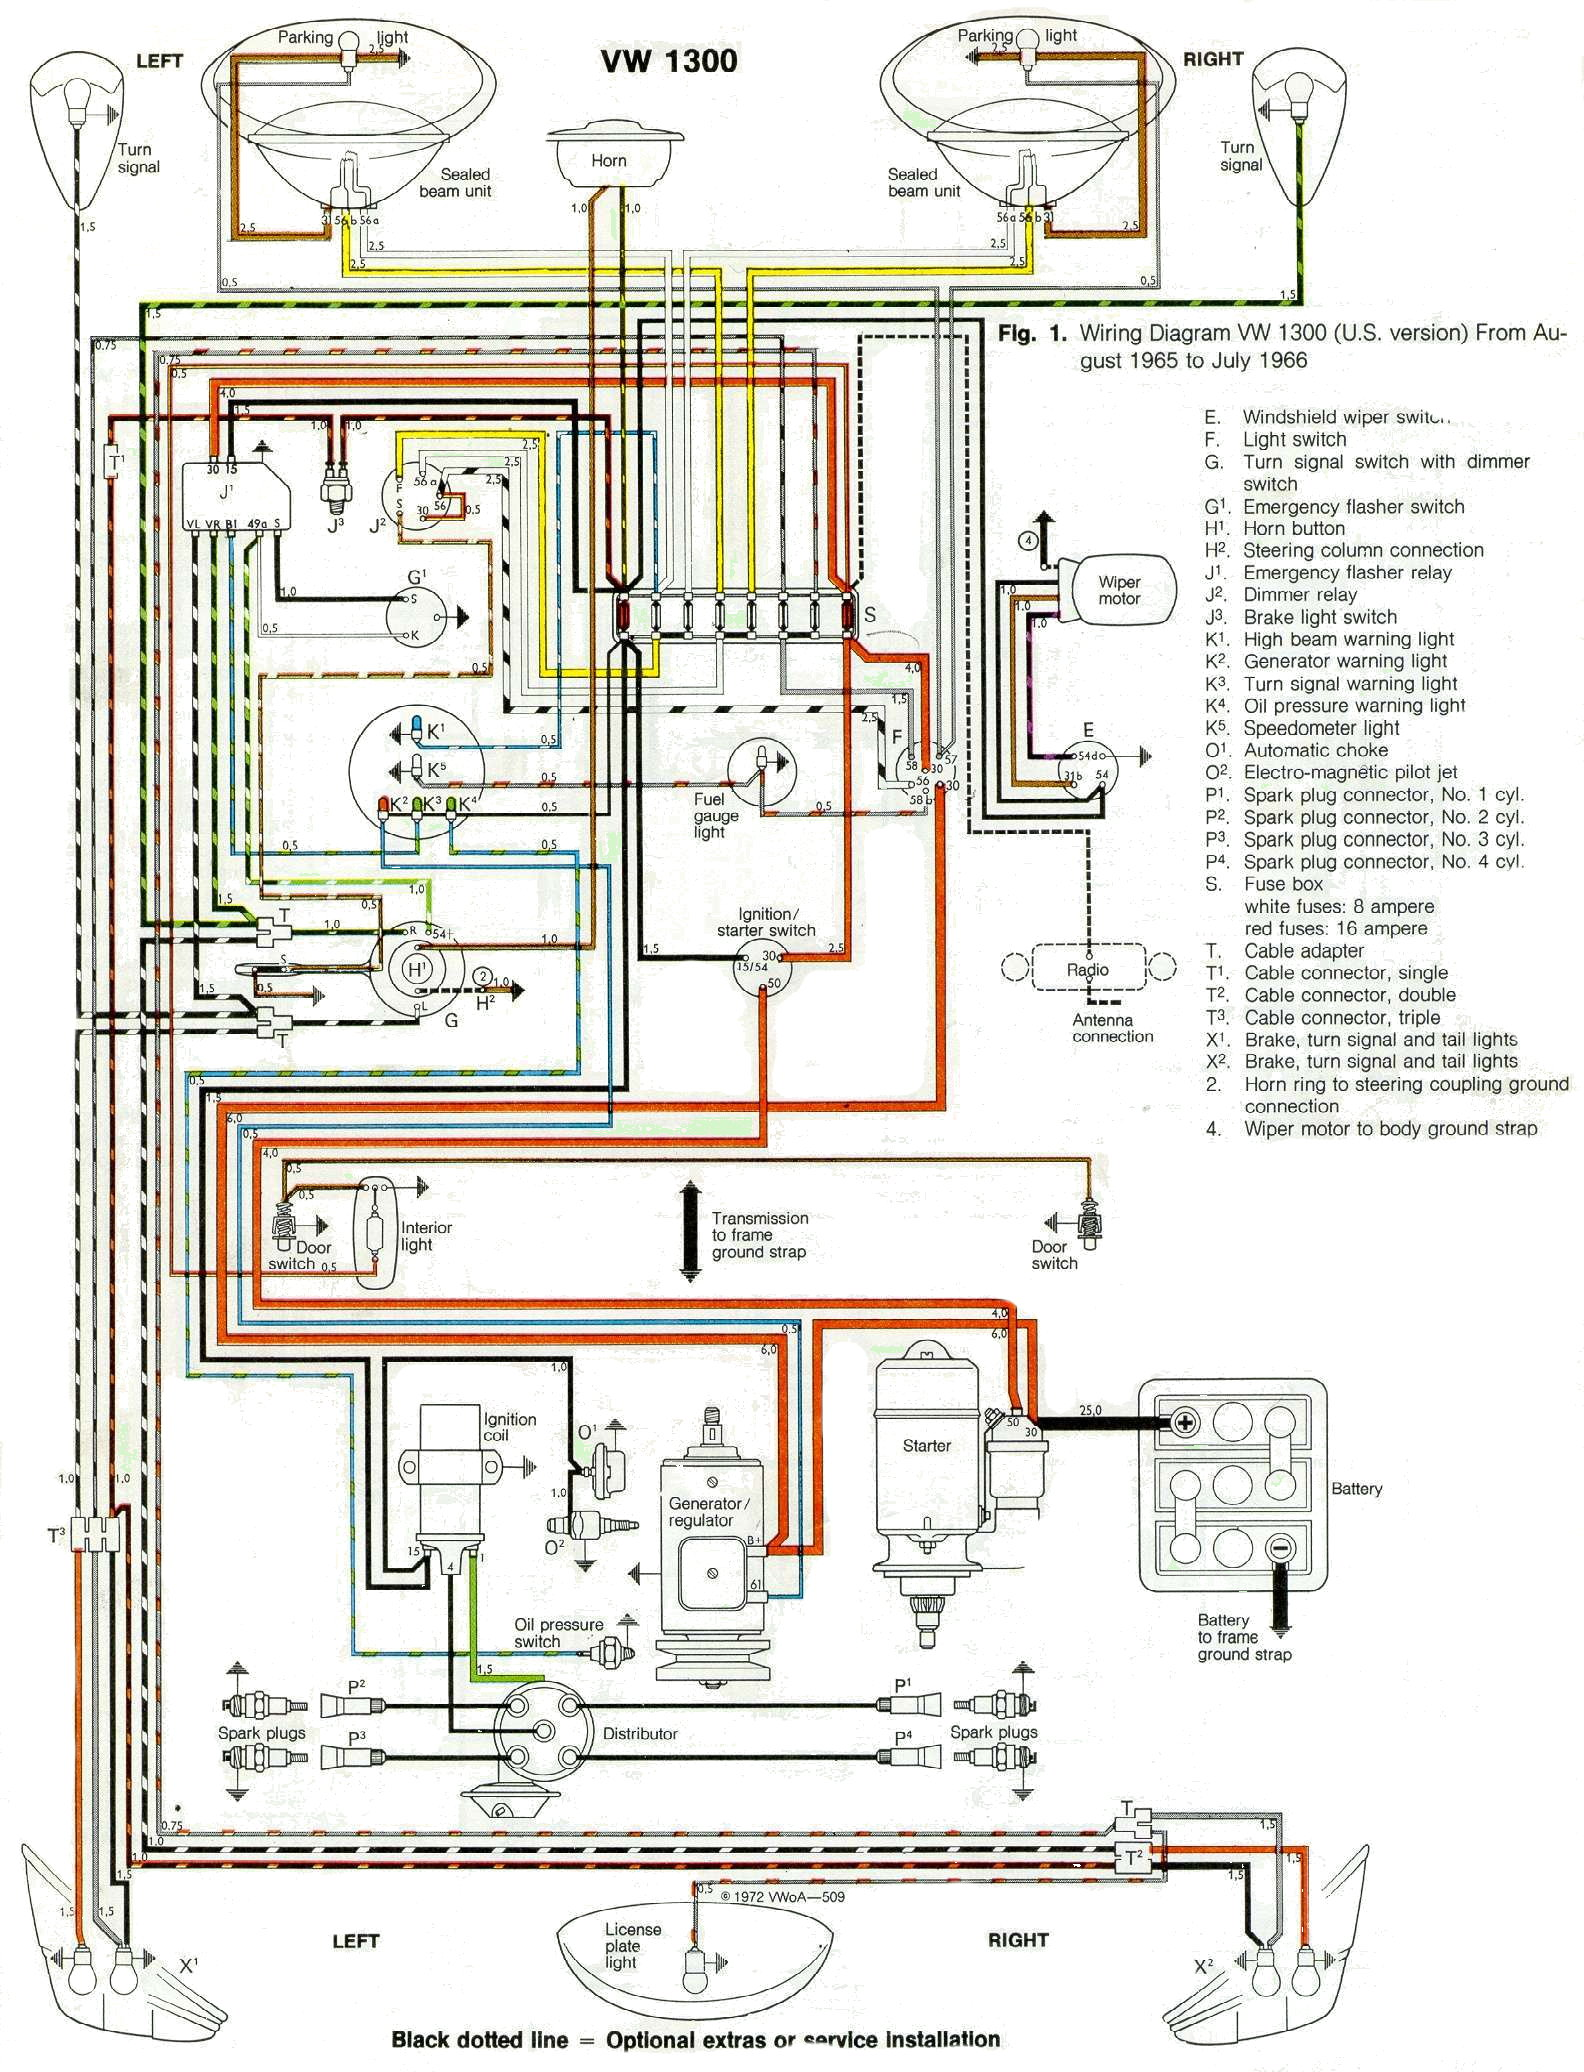 Vw Coil Wiring Diagram Vw Wiring Diagrams Vw Engine Wiring Diagram